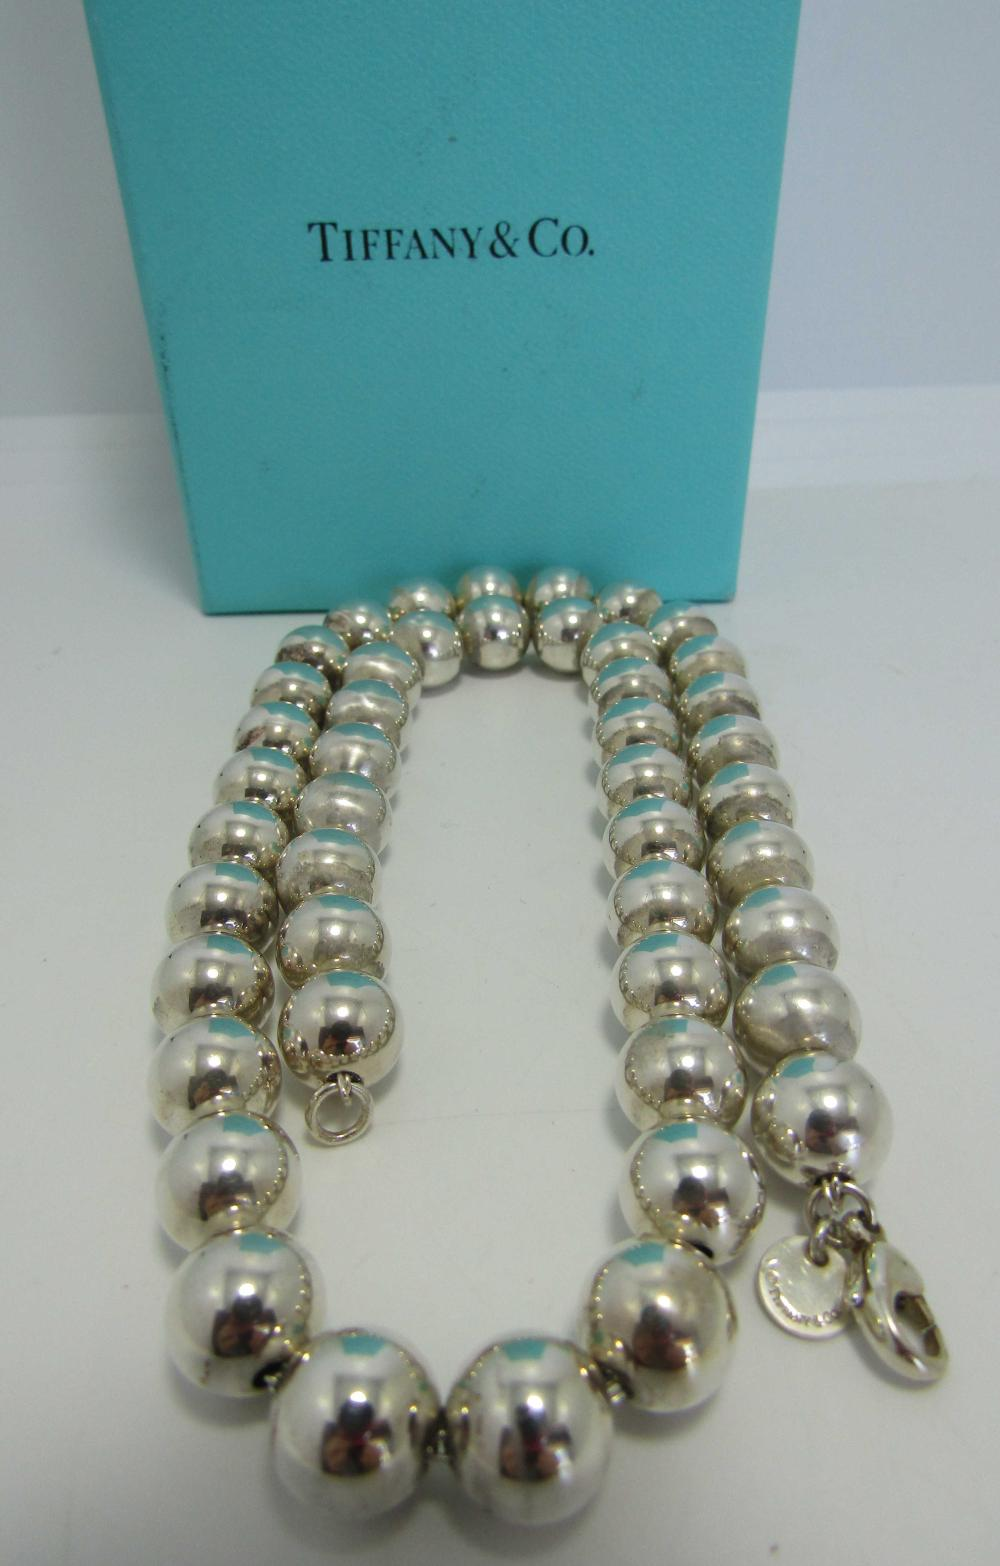 Tiffany Co 10m Bead Necklace 18 Sterling Silver